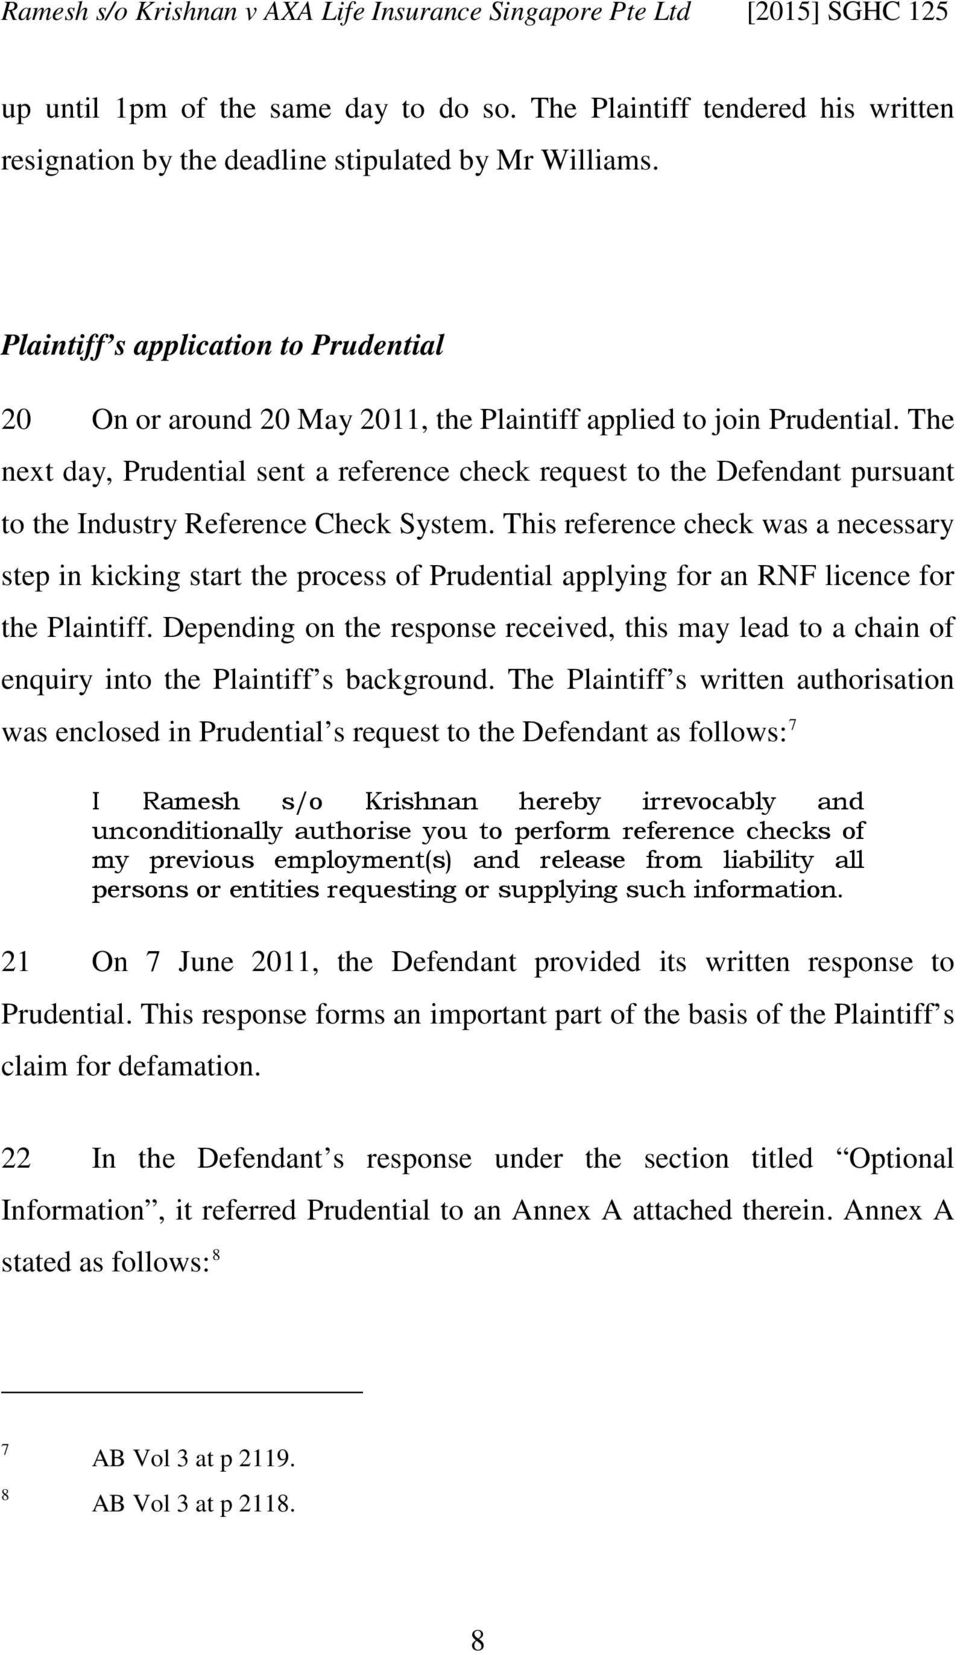 The next day, Prudential sent a reference check request to the Defendant pursuant to the Industry Reference Check System.